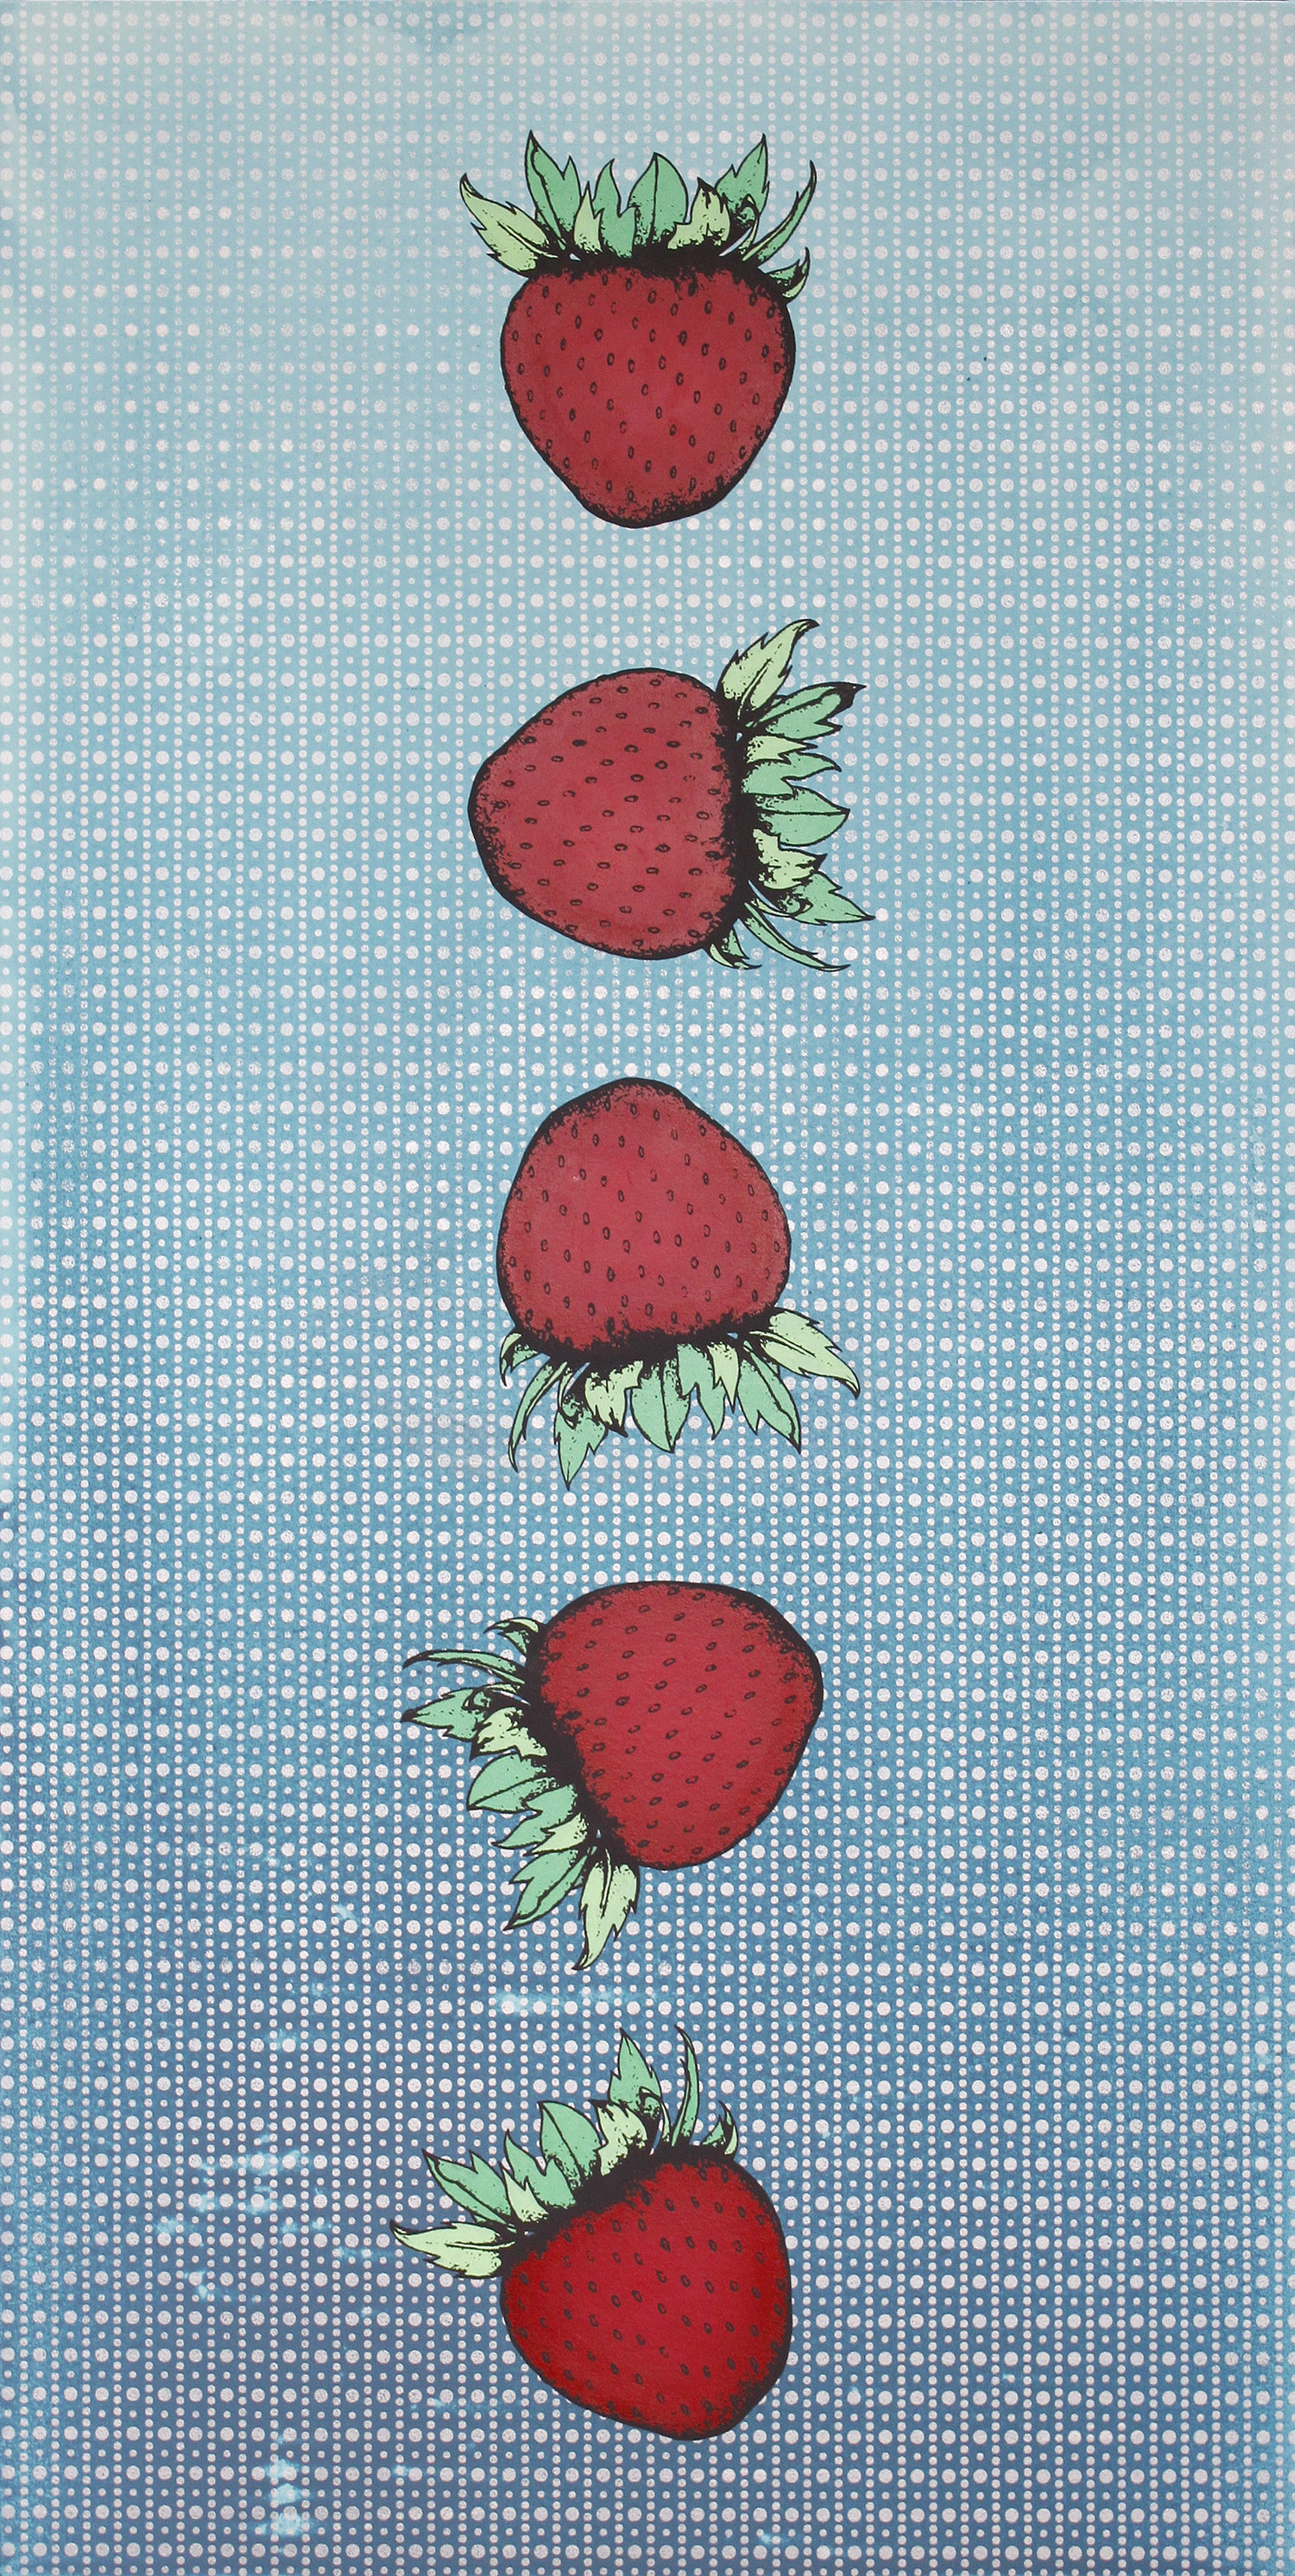 The Perfect Strawberry    Acrylic on canvas mounted on board   24 x 48 x 2.5 inches 2016